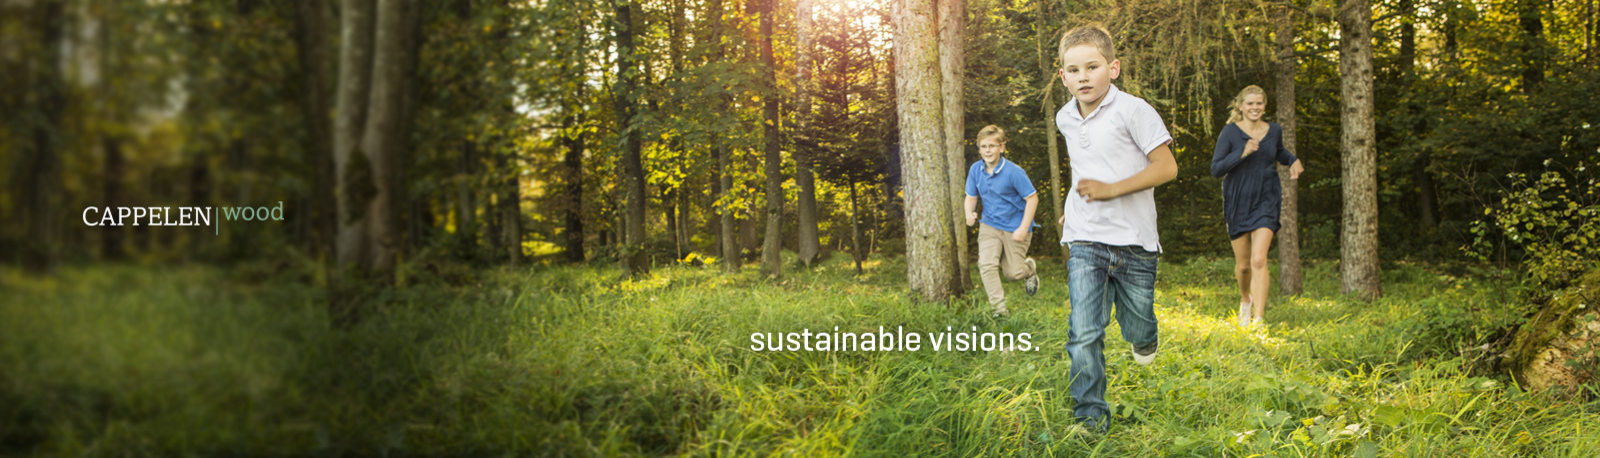 sustainable visions.